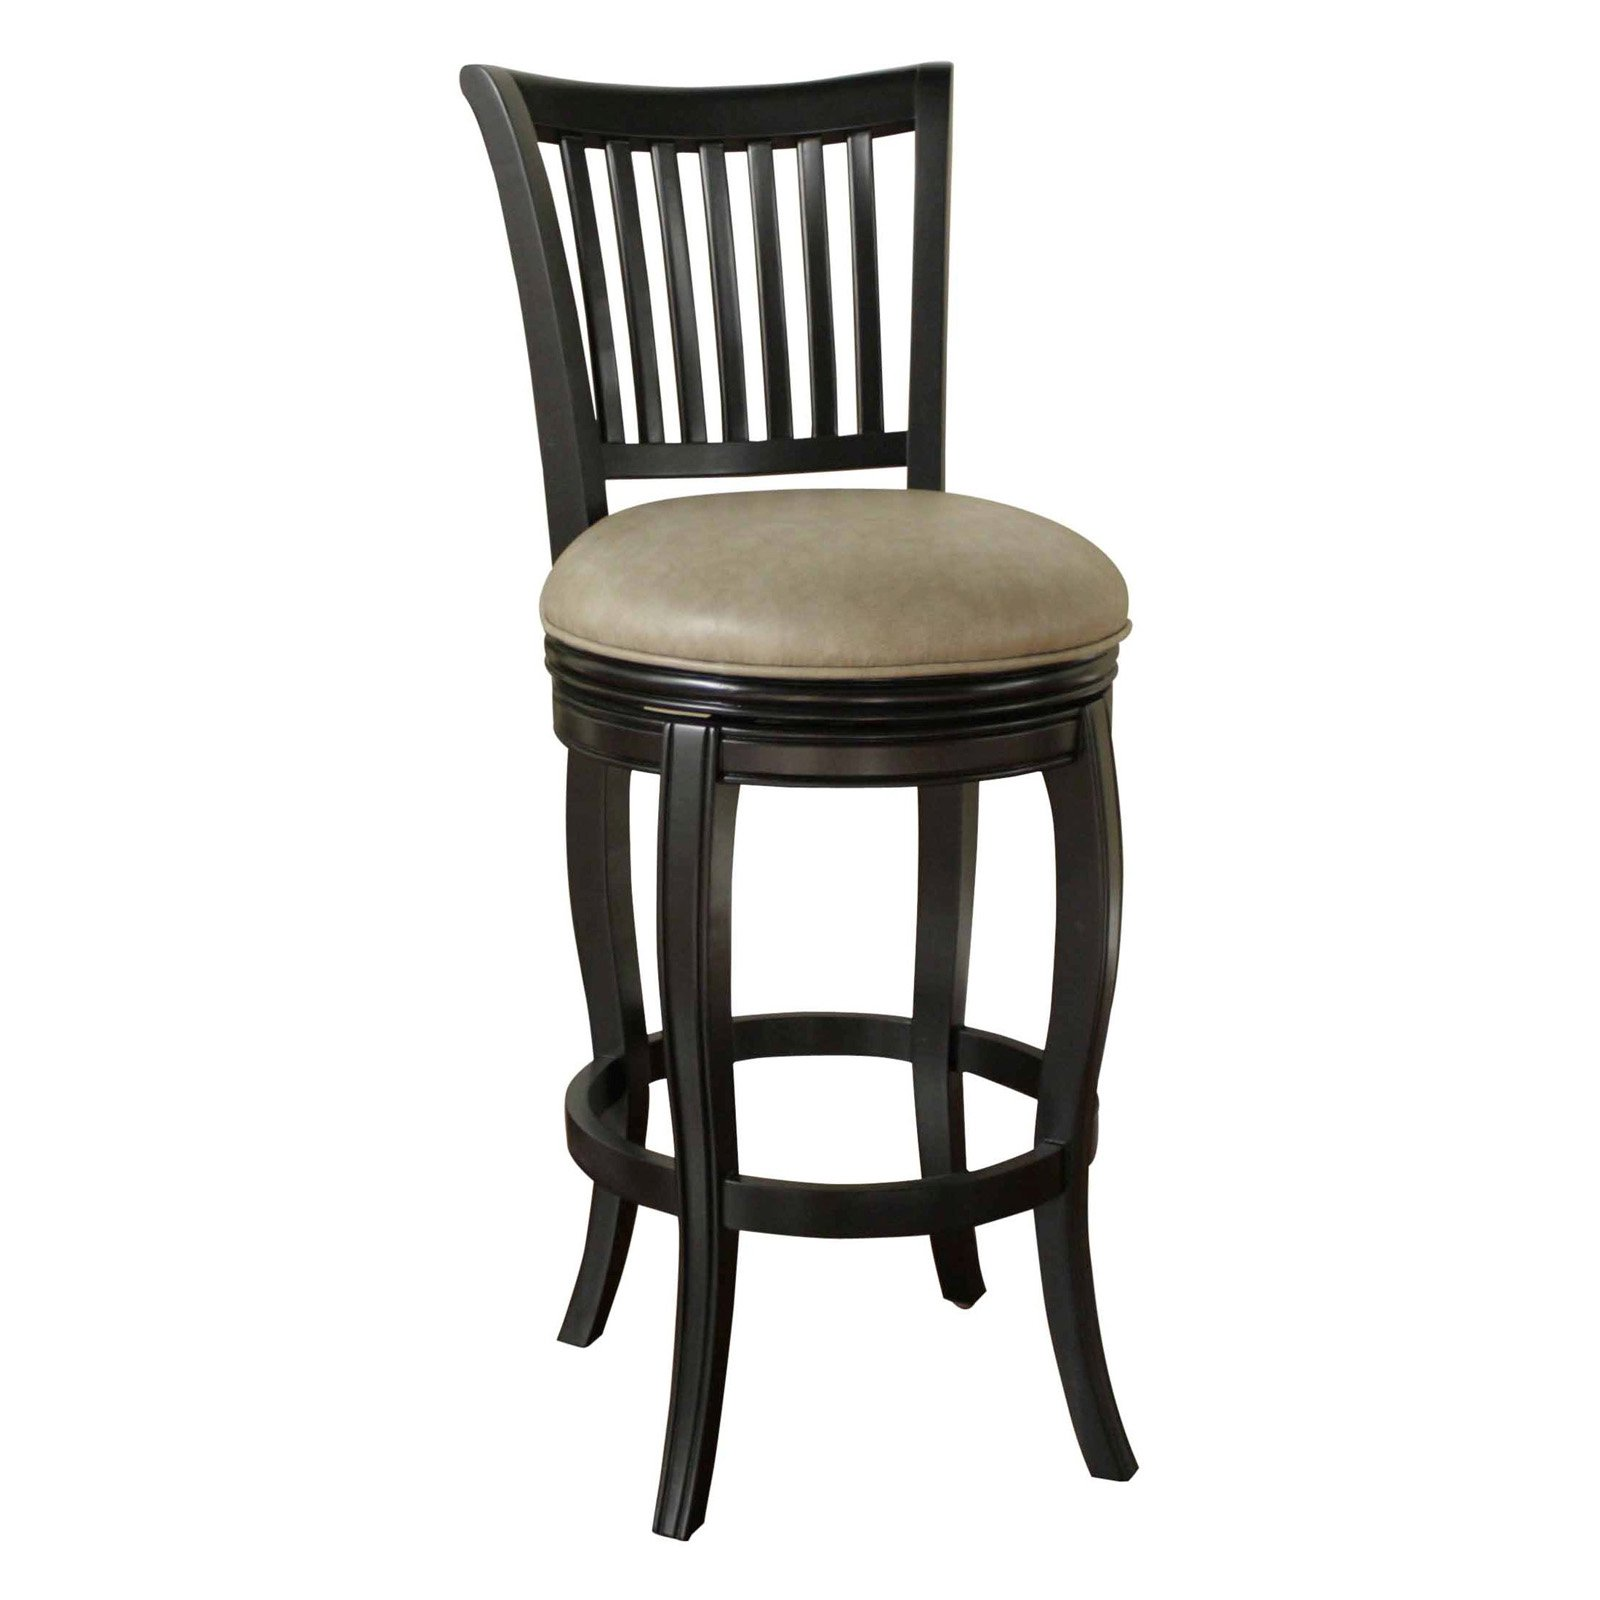 Ahb 34 In Maxwell Swivel Tall Bar Stool Black With Mushroom